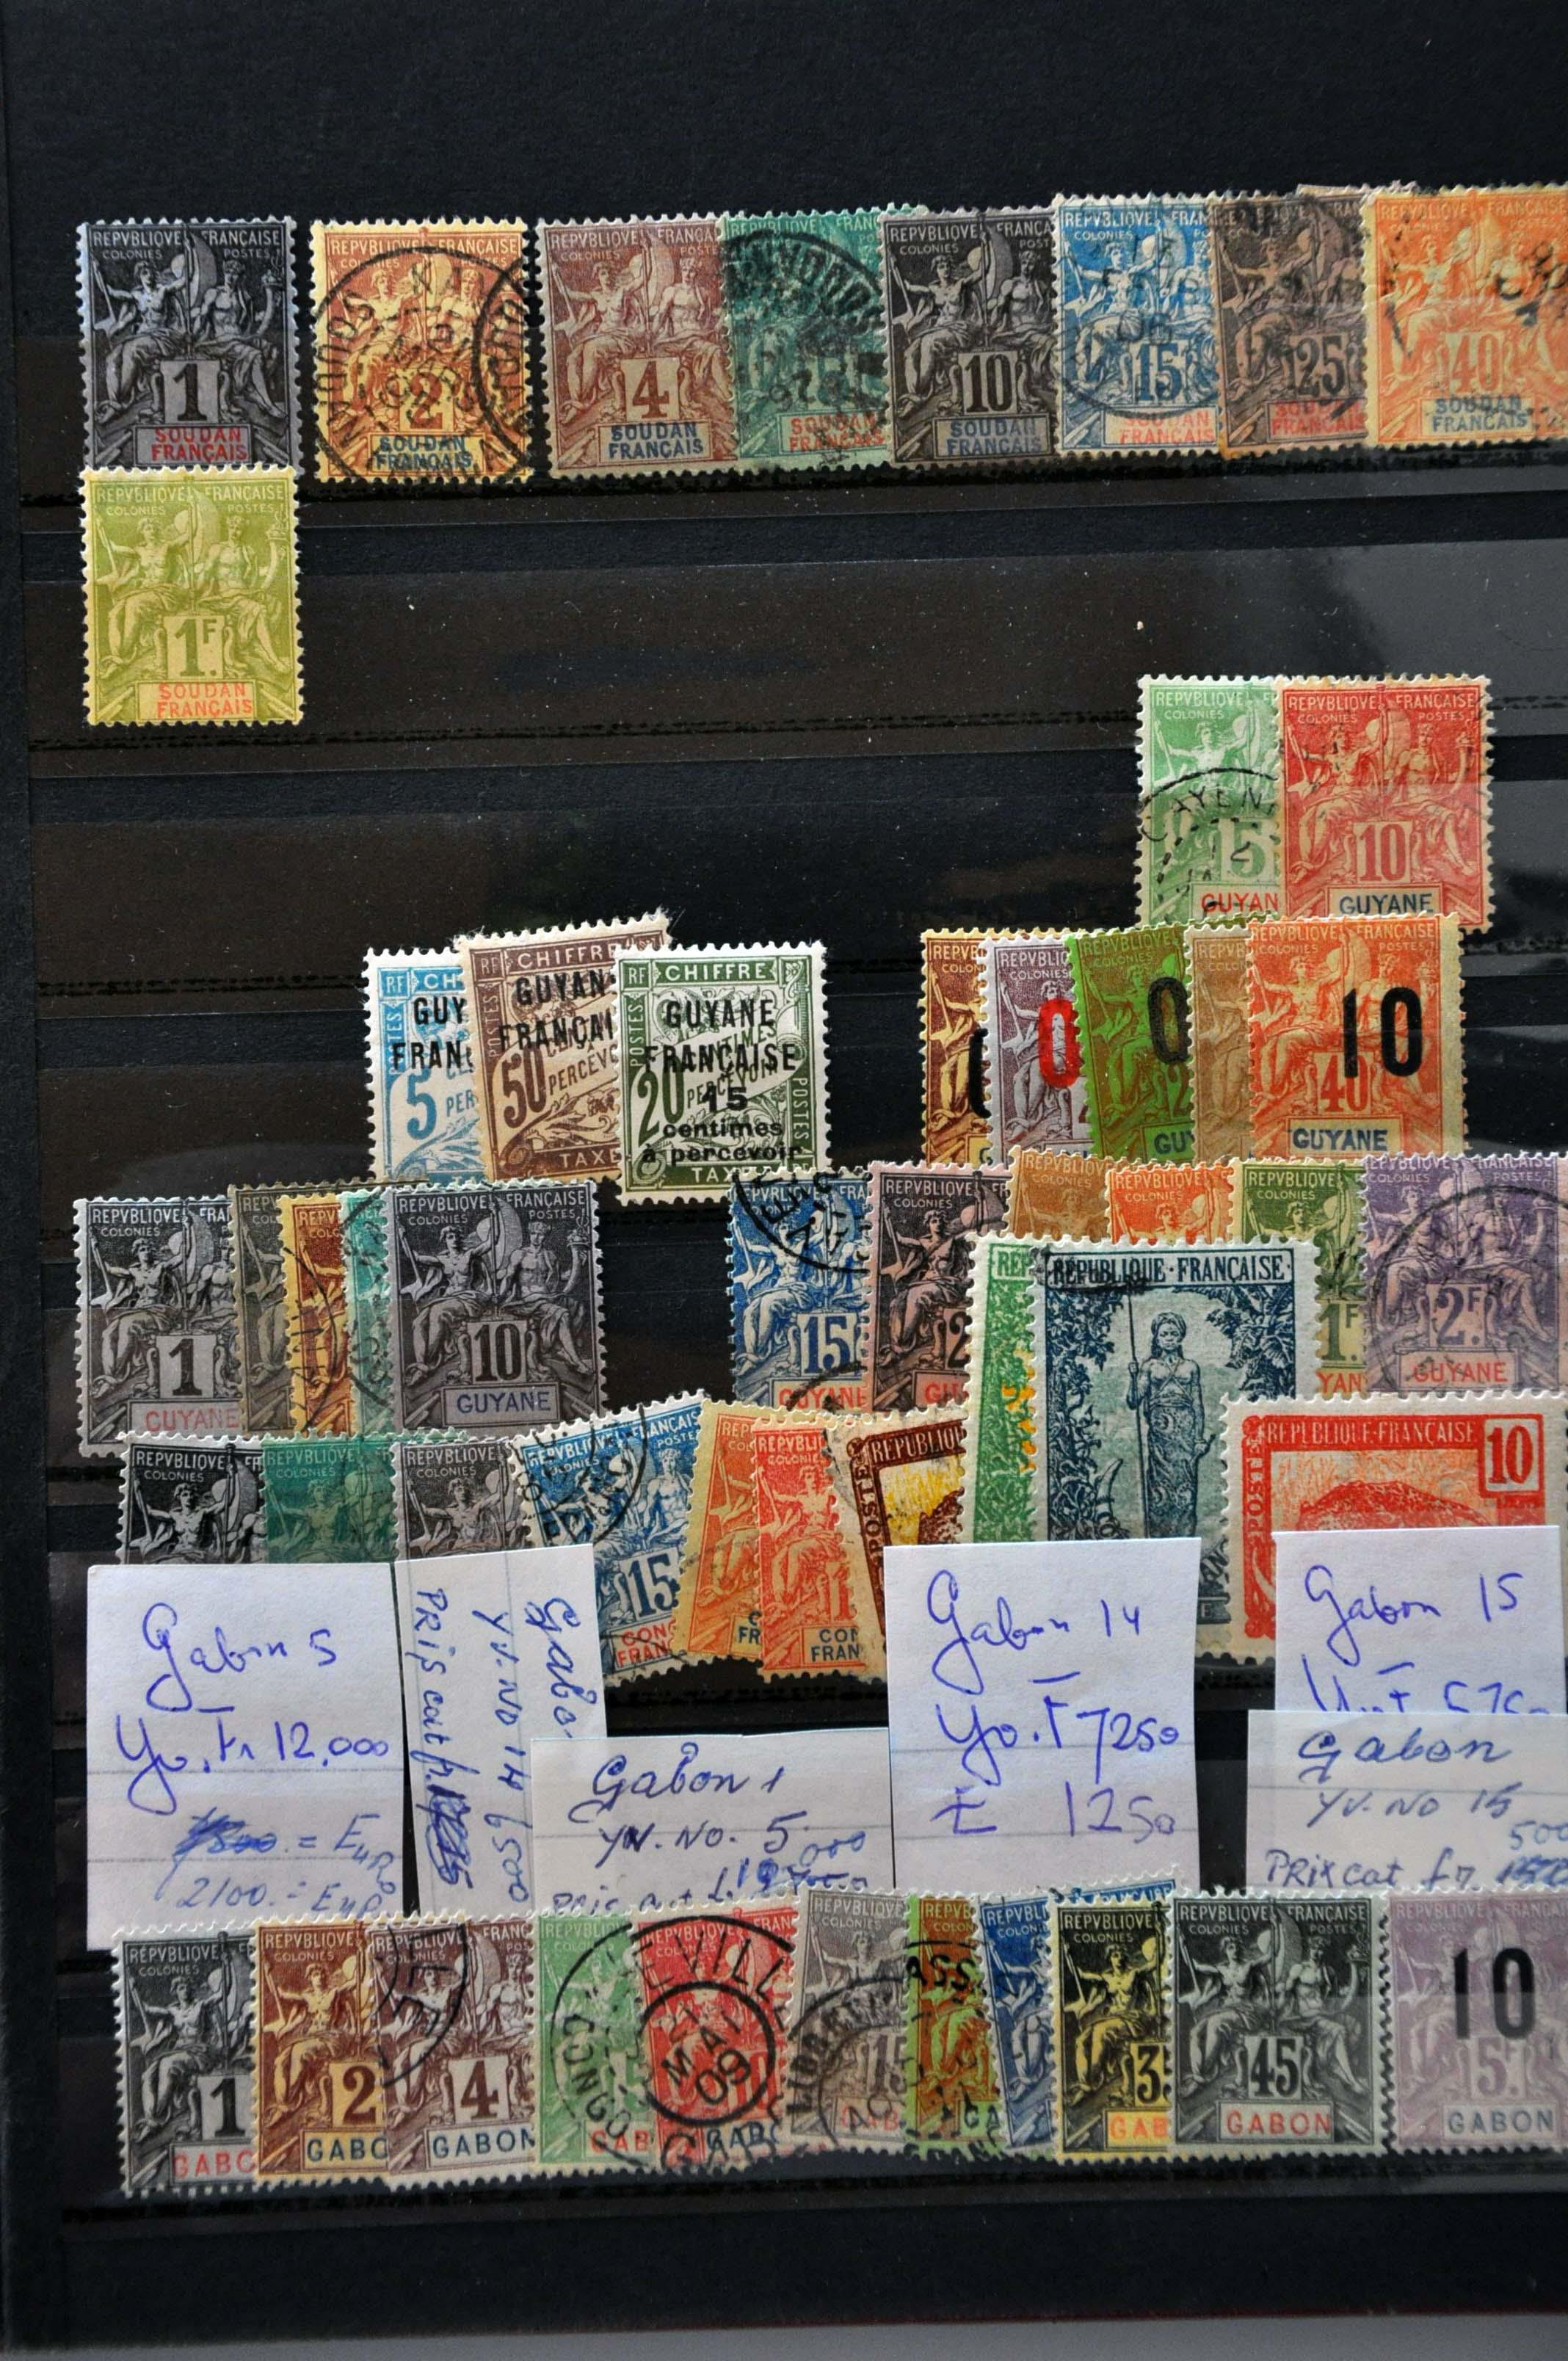 Lot 565 - France and former colonies french territories -  Corinphila Veilingen Auction 244 -Netherlands and former colonies, WW2 Postal History, Bosnia, German and British colonies, Egypt. - Day 1